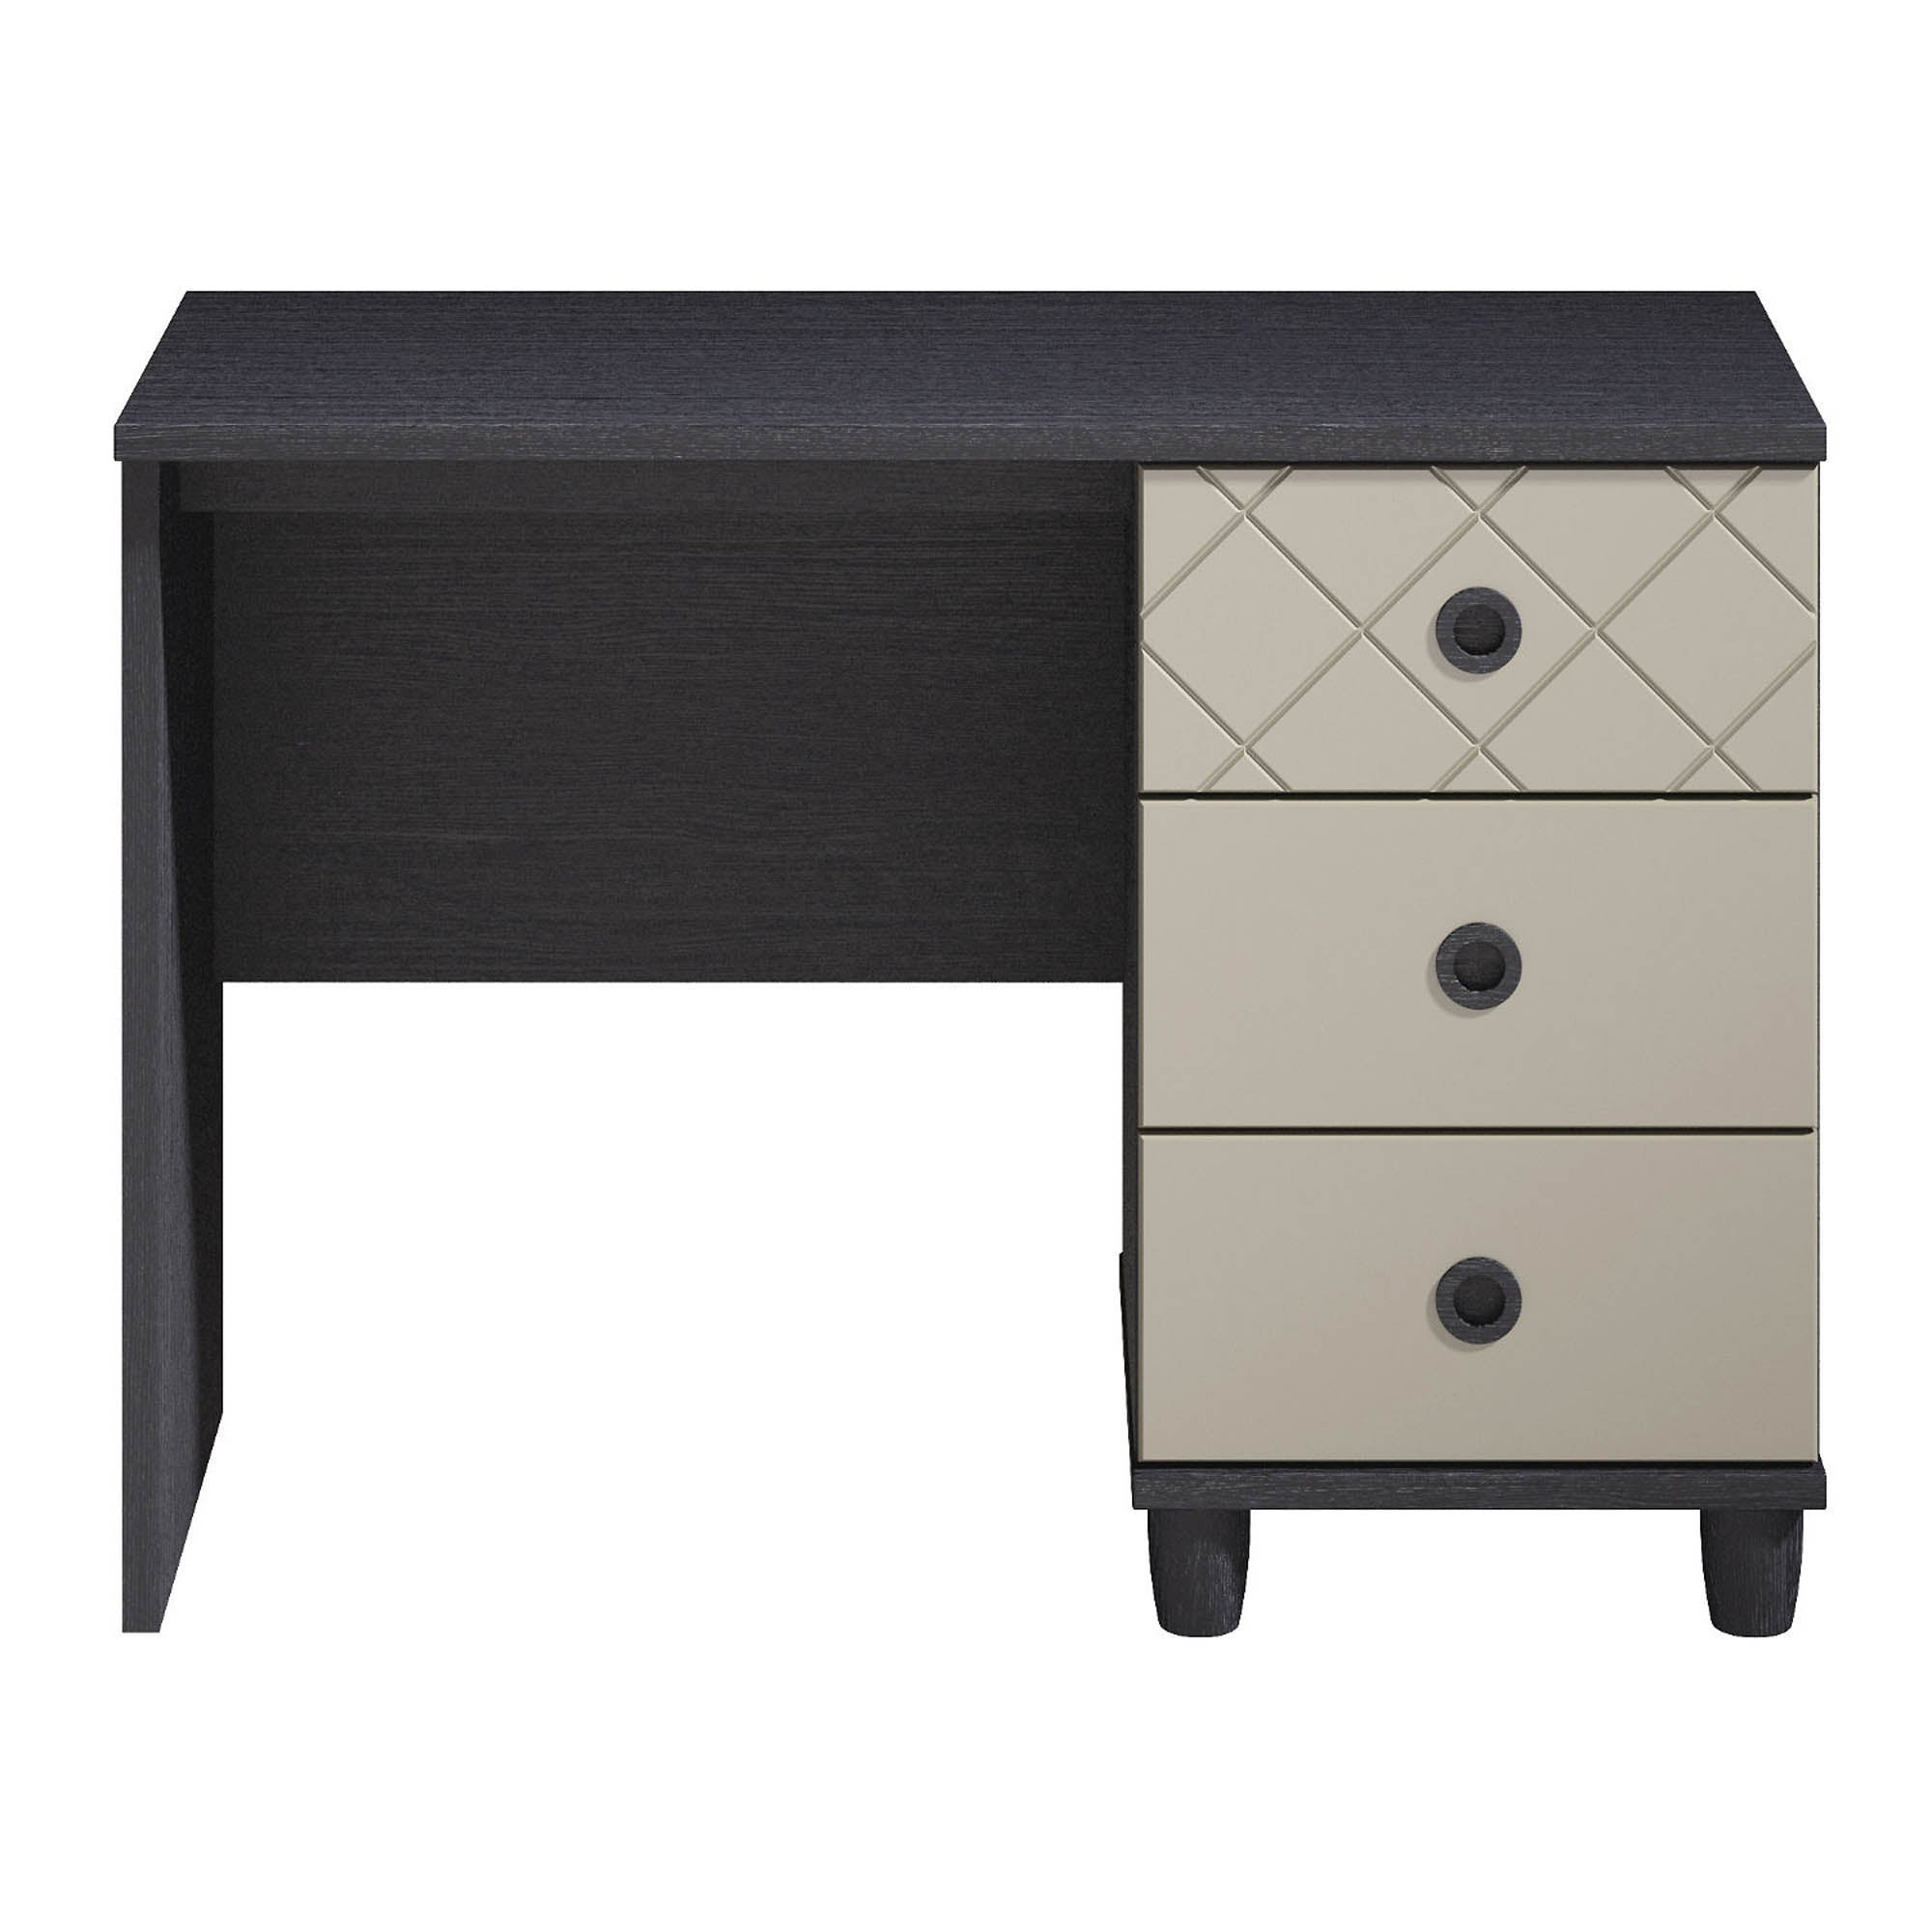 Photo of Thea single pedestal black dressing table smoke -grey-